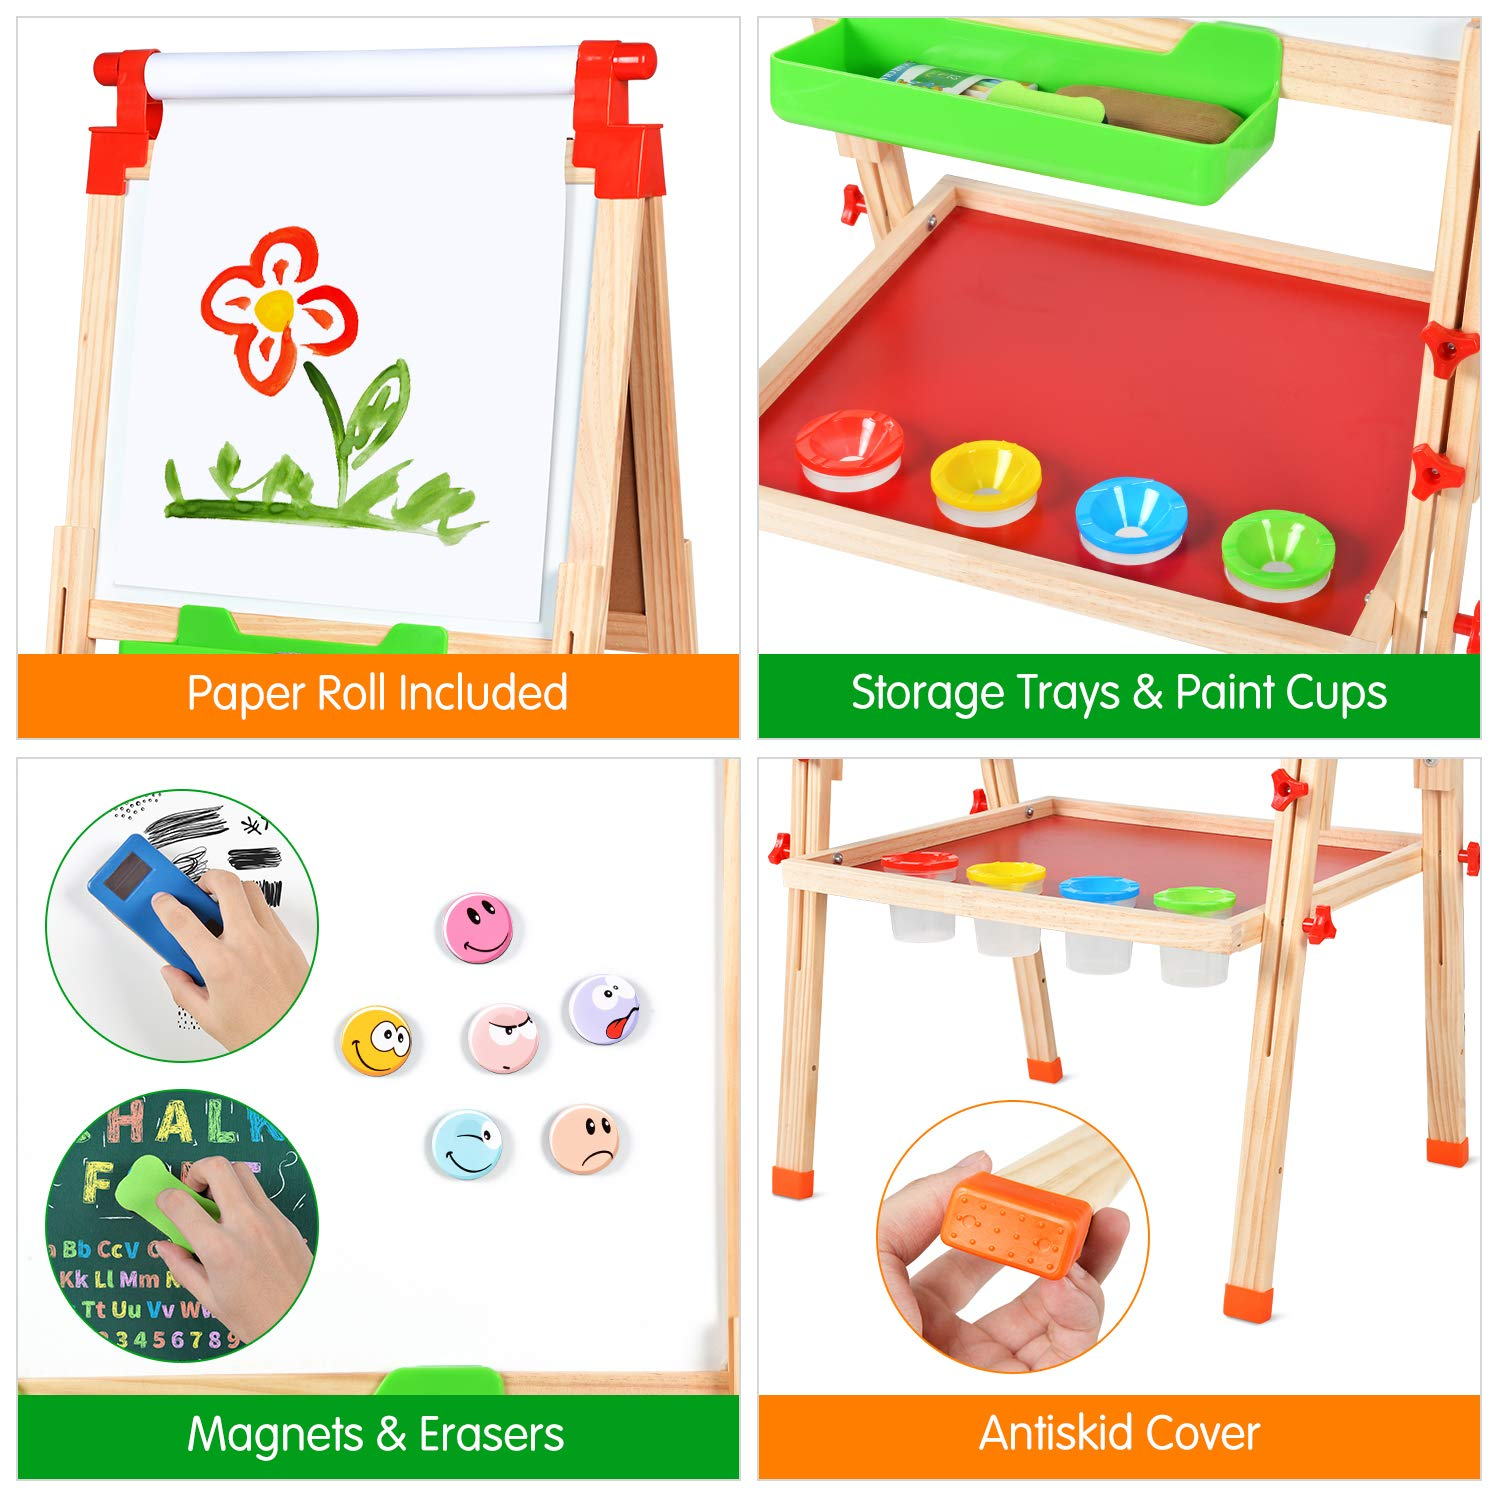 Wesimplelife Kids Art Easel Wooden Easel Double Sided Green and White Board 3 in 1 Adjustable Table Easel Chalkboard with Paper Roller Magnets Educational Toy Gifts for Children